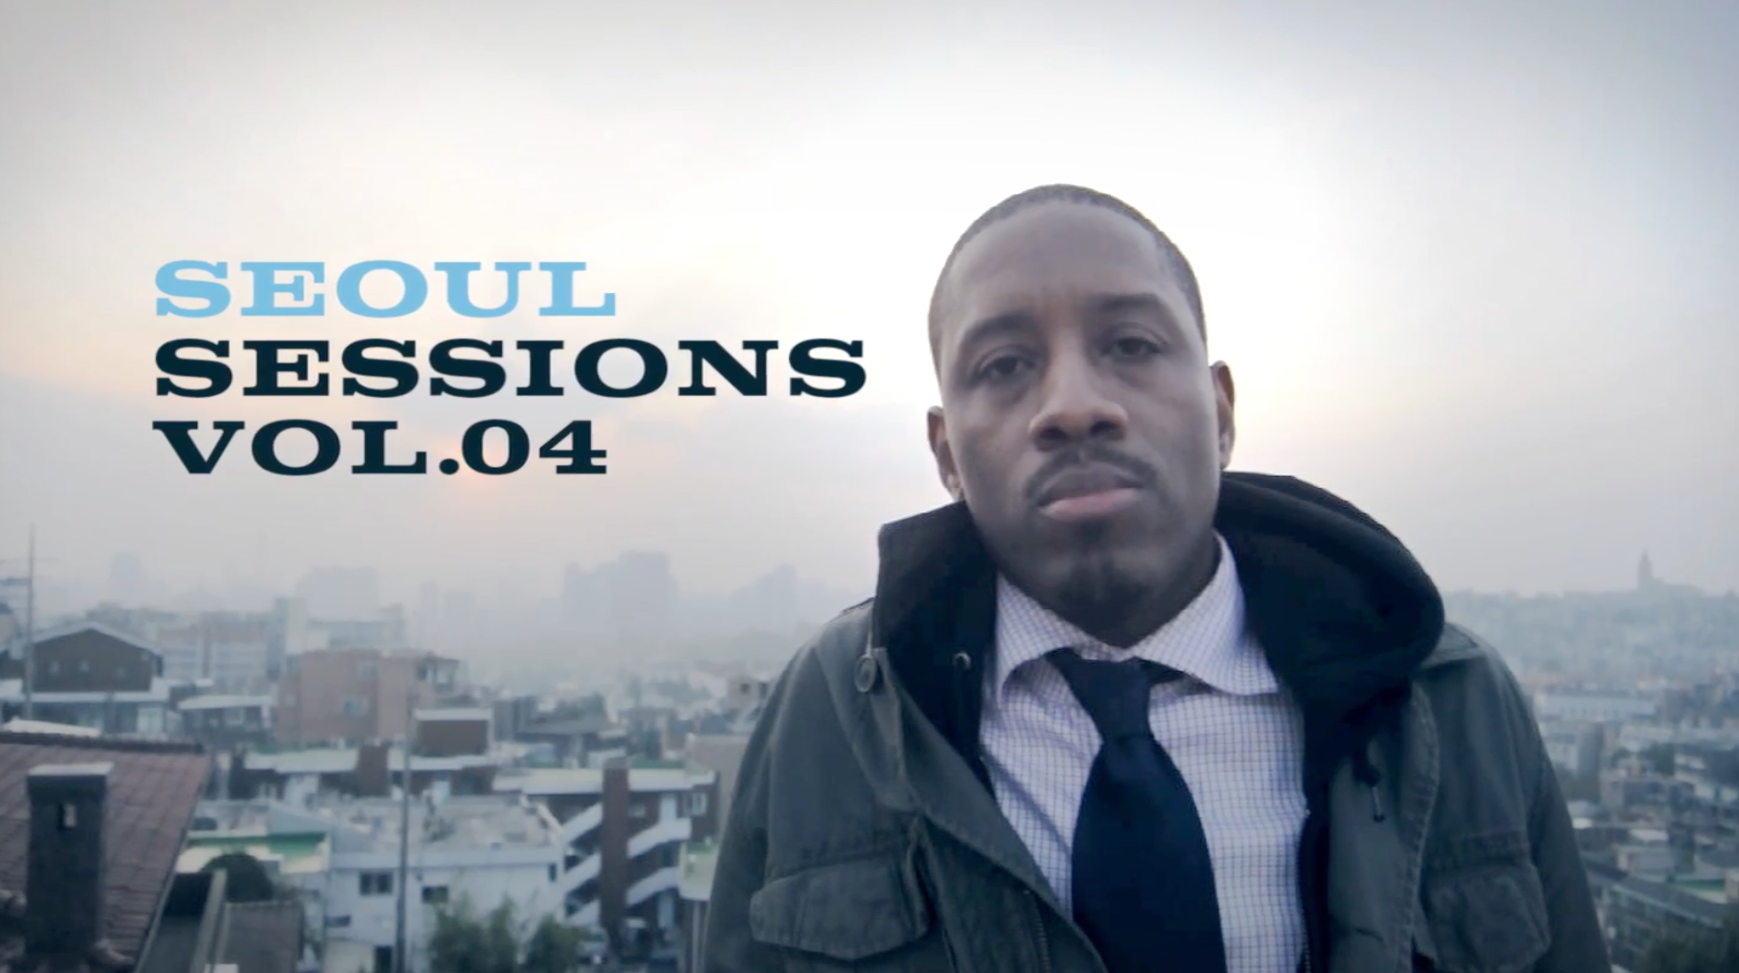 SEOUL SESSIONS Ep.4 : &#8220;COLORING A STORY&#8221;